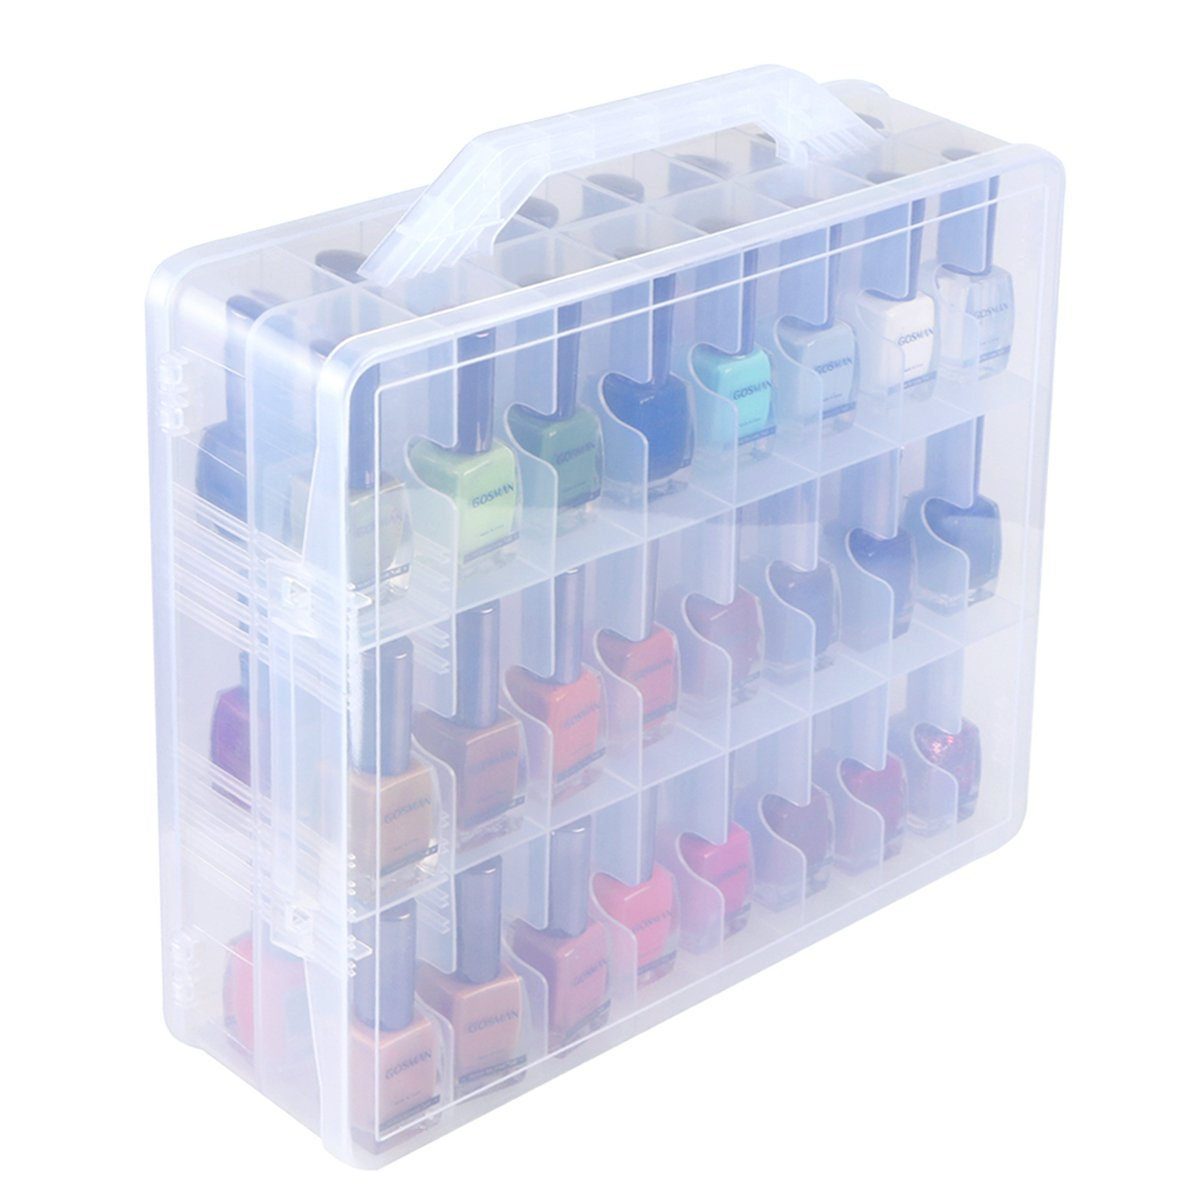 Kissbuty Universal Nail Polish Holder Organizer for 48 Bottles Adjustable Dividers Space Saver